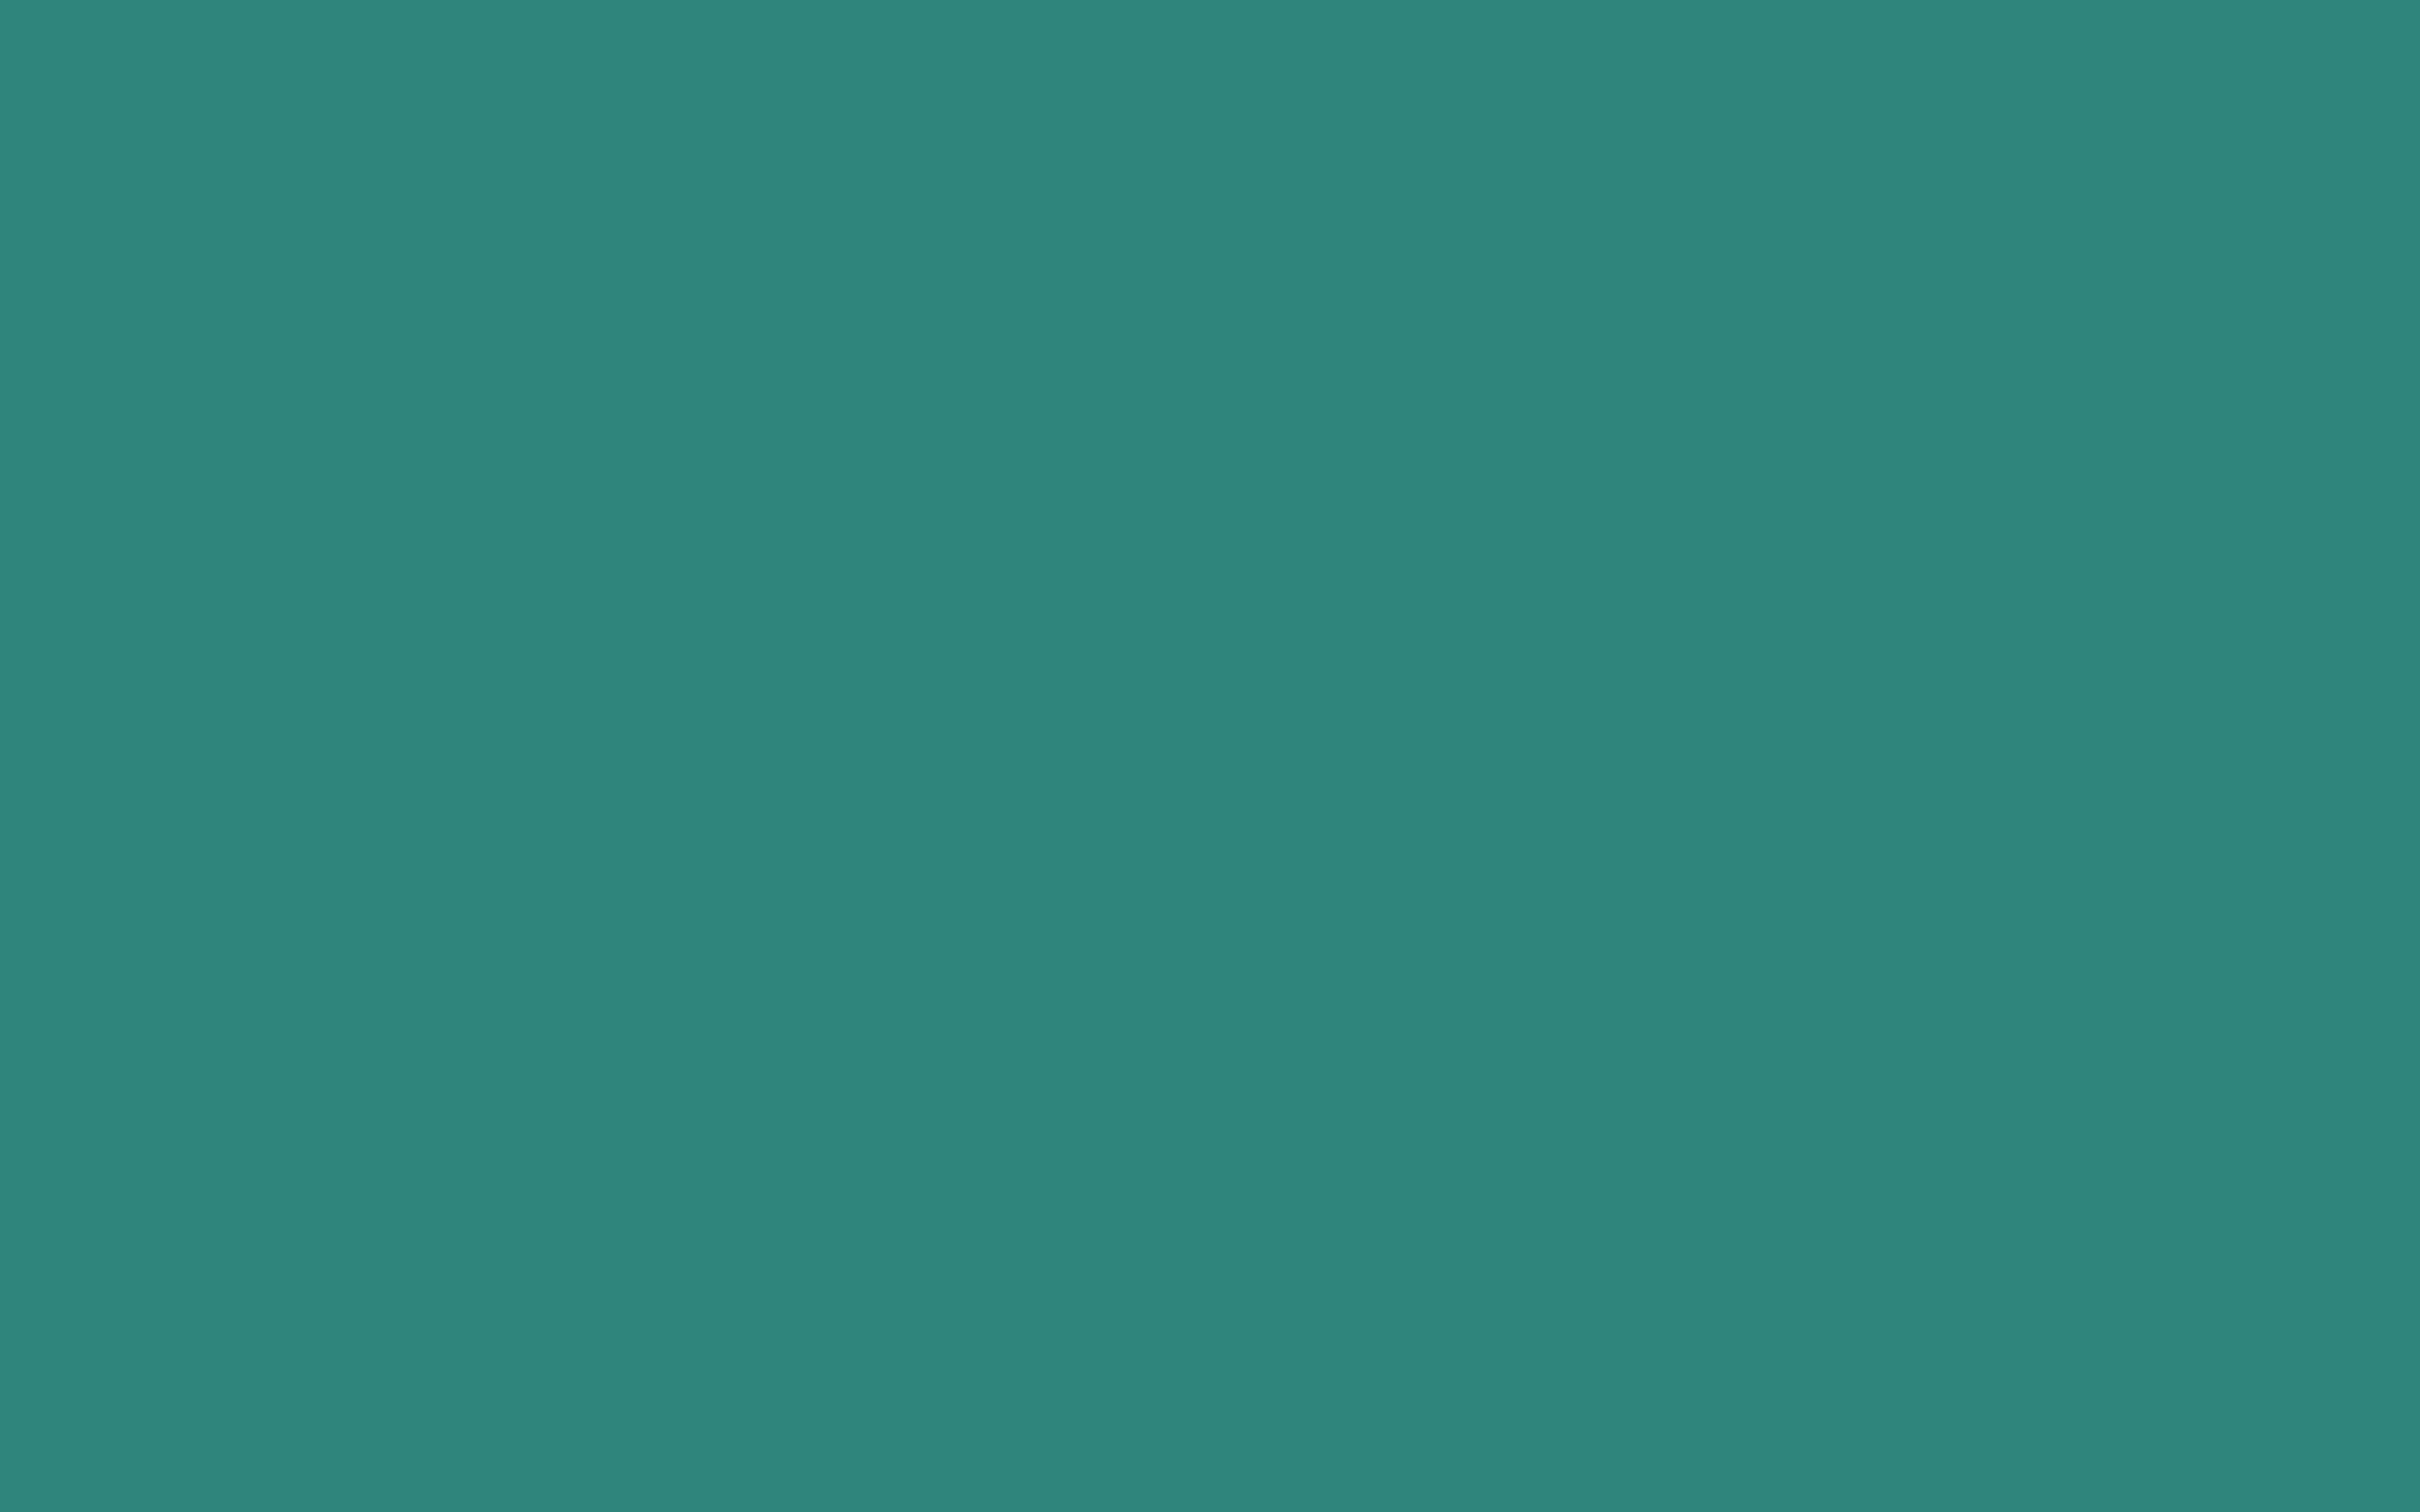 2560x1600 Celadon Green Solid Color Background